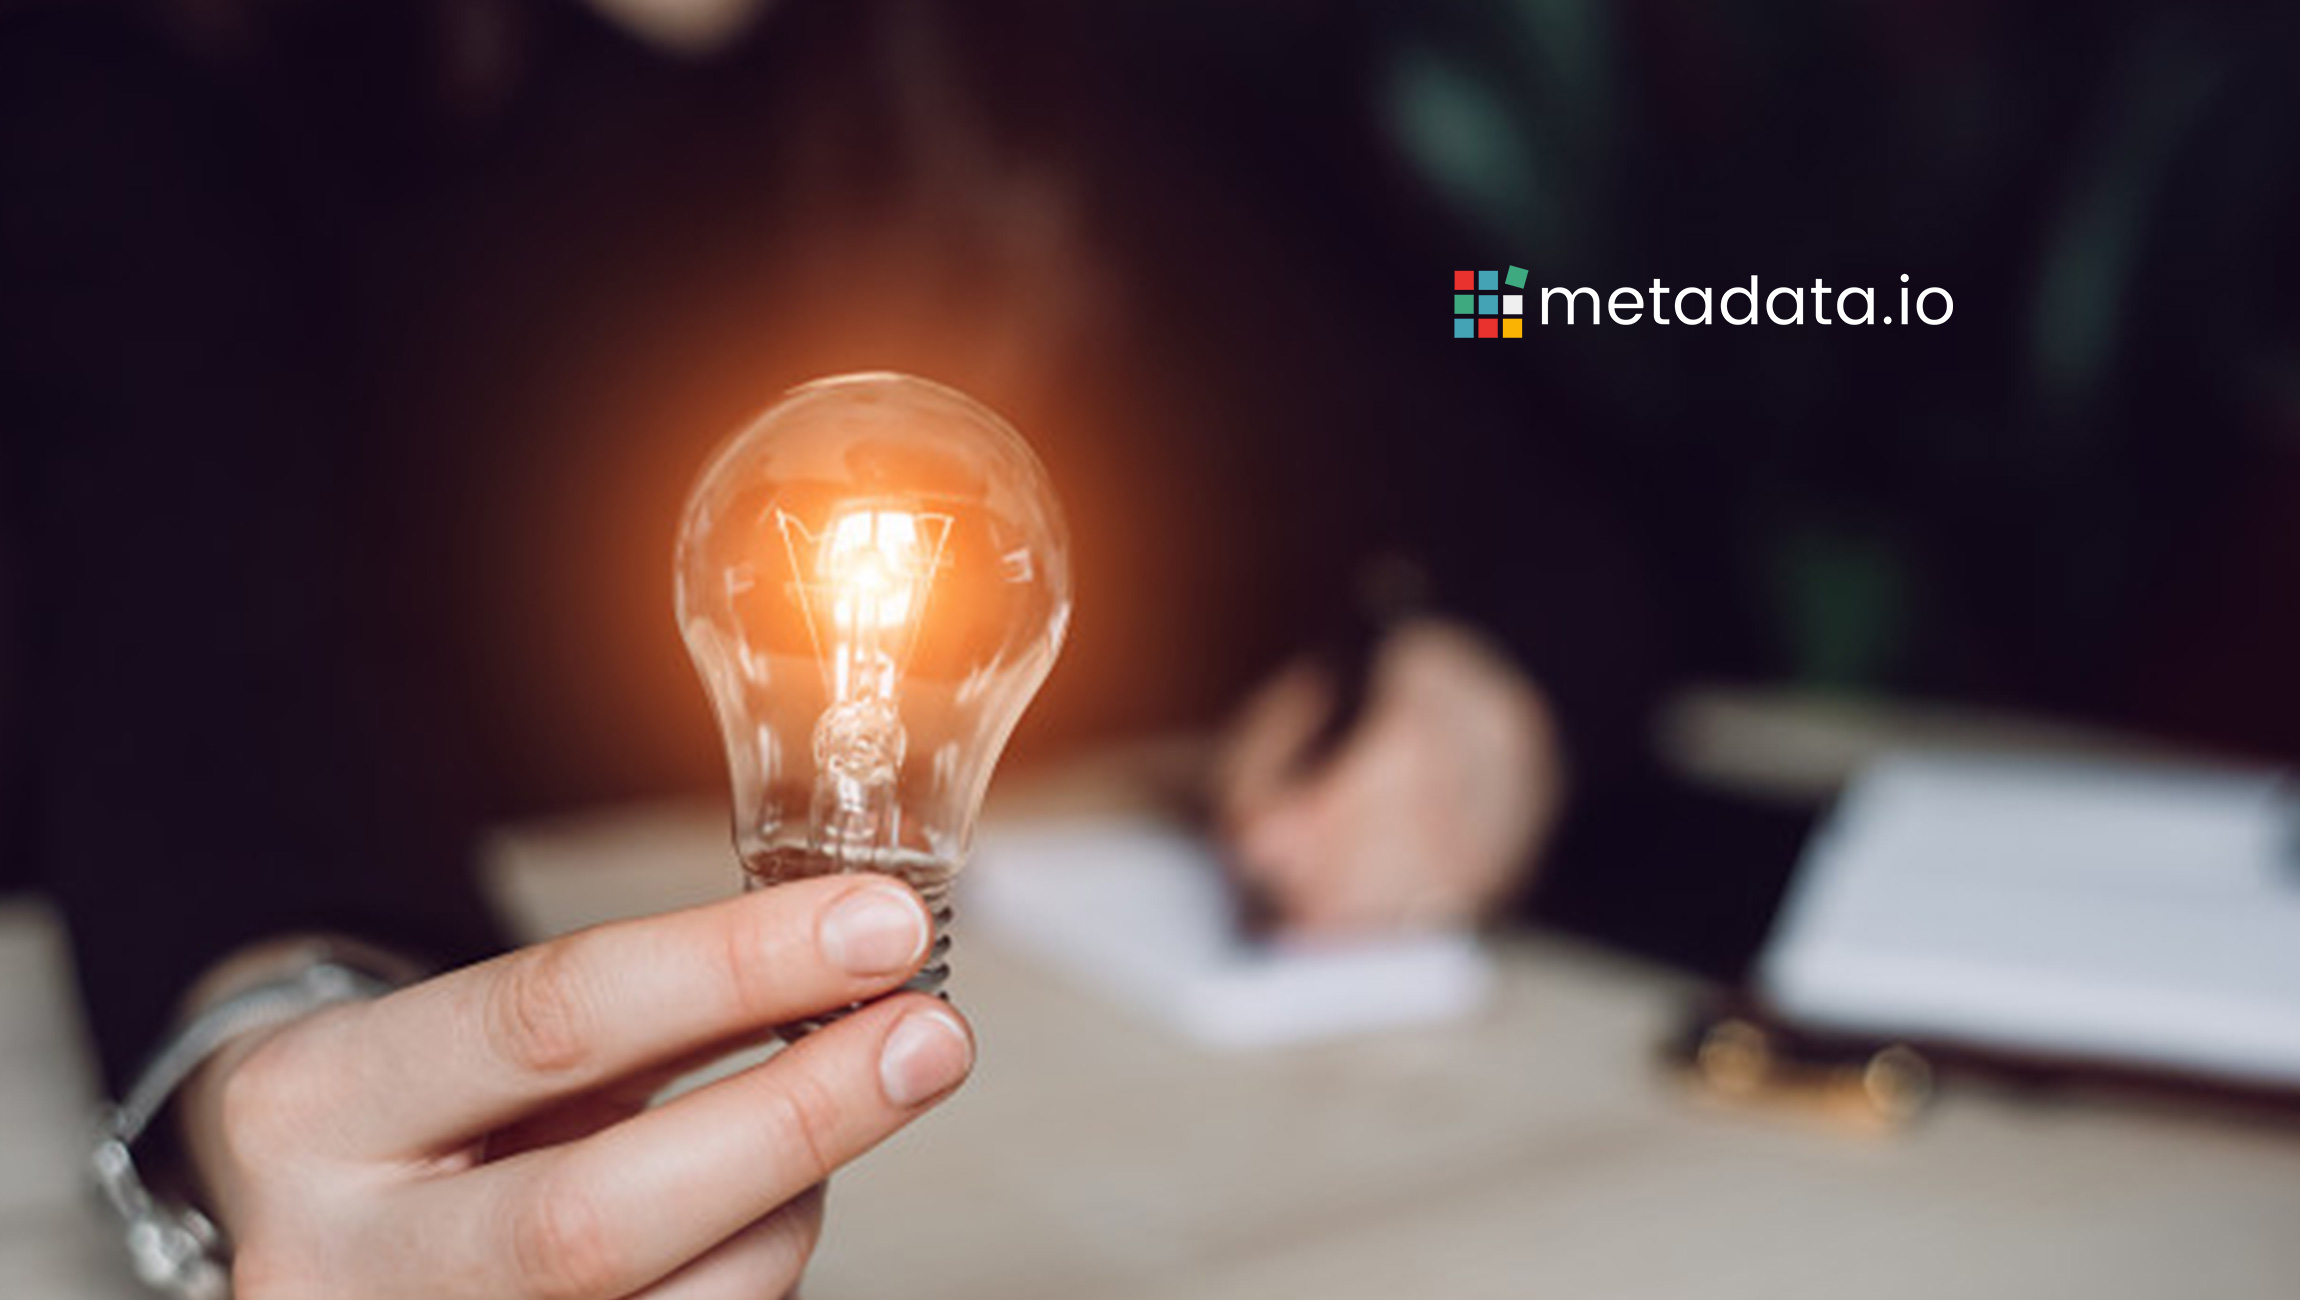 AI-Powered Marketing Operations by Metadata.Io to Provide Improved Digital Marketing Results